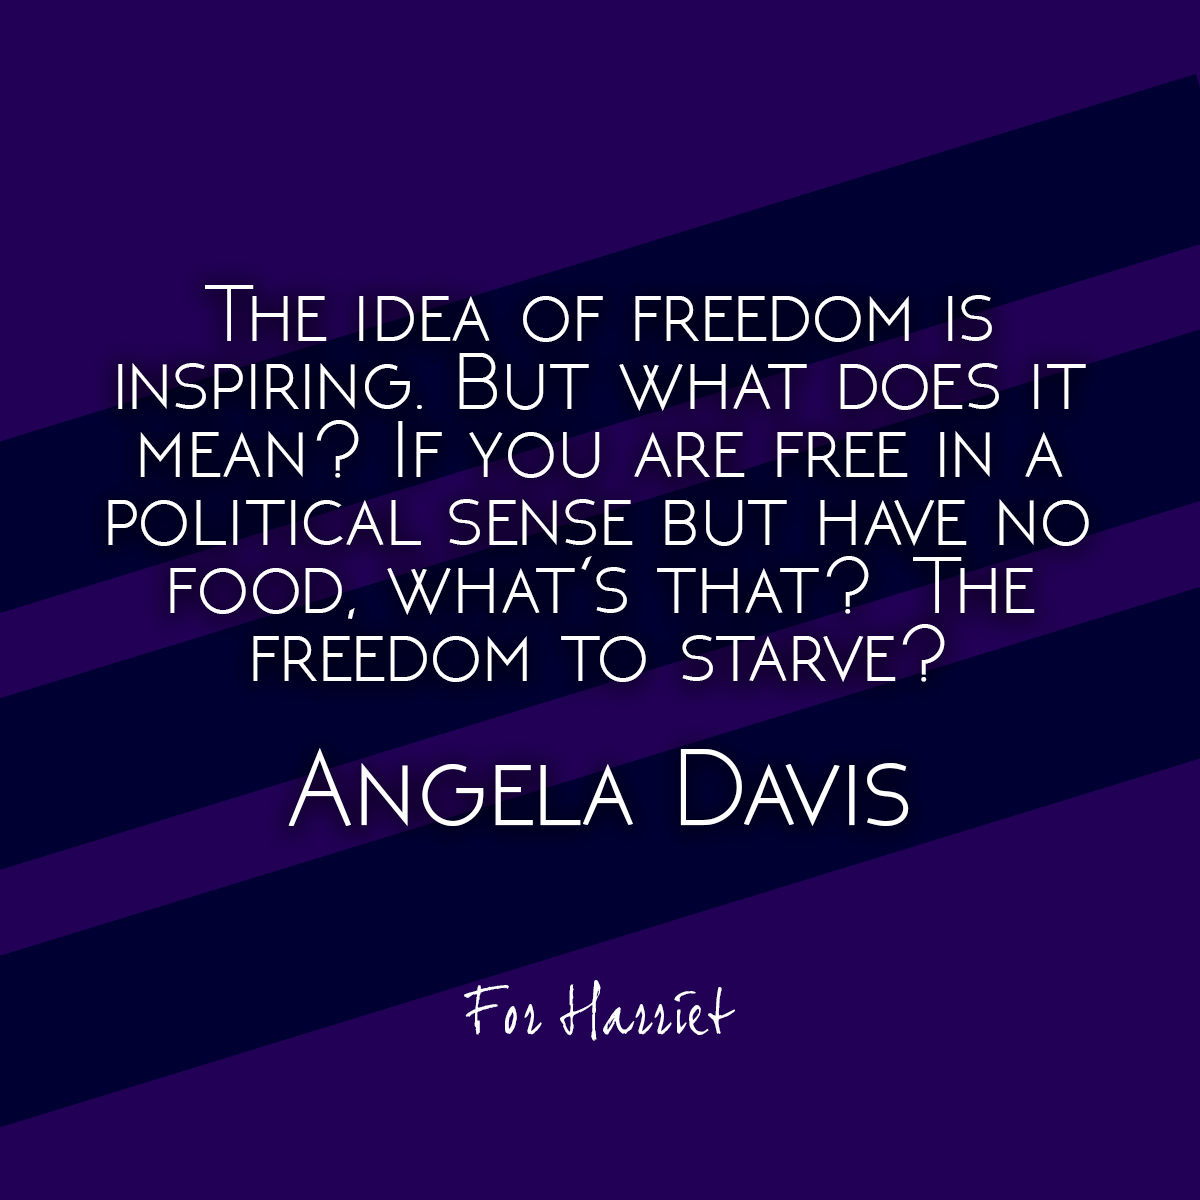 African American Inspirational Quotes About Life 20 Quotes From Angela Davis That Inspire Us To Keep Up The Fight